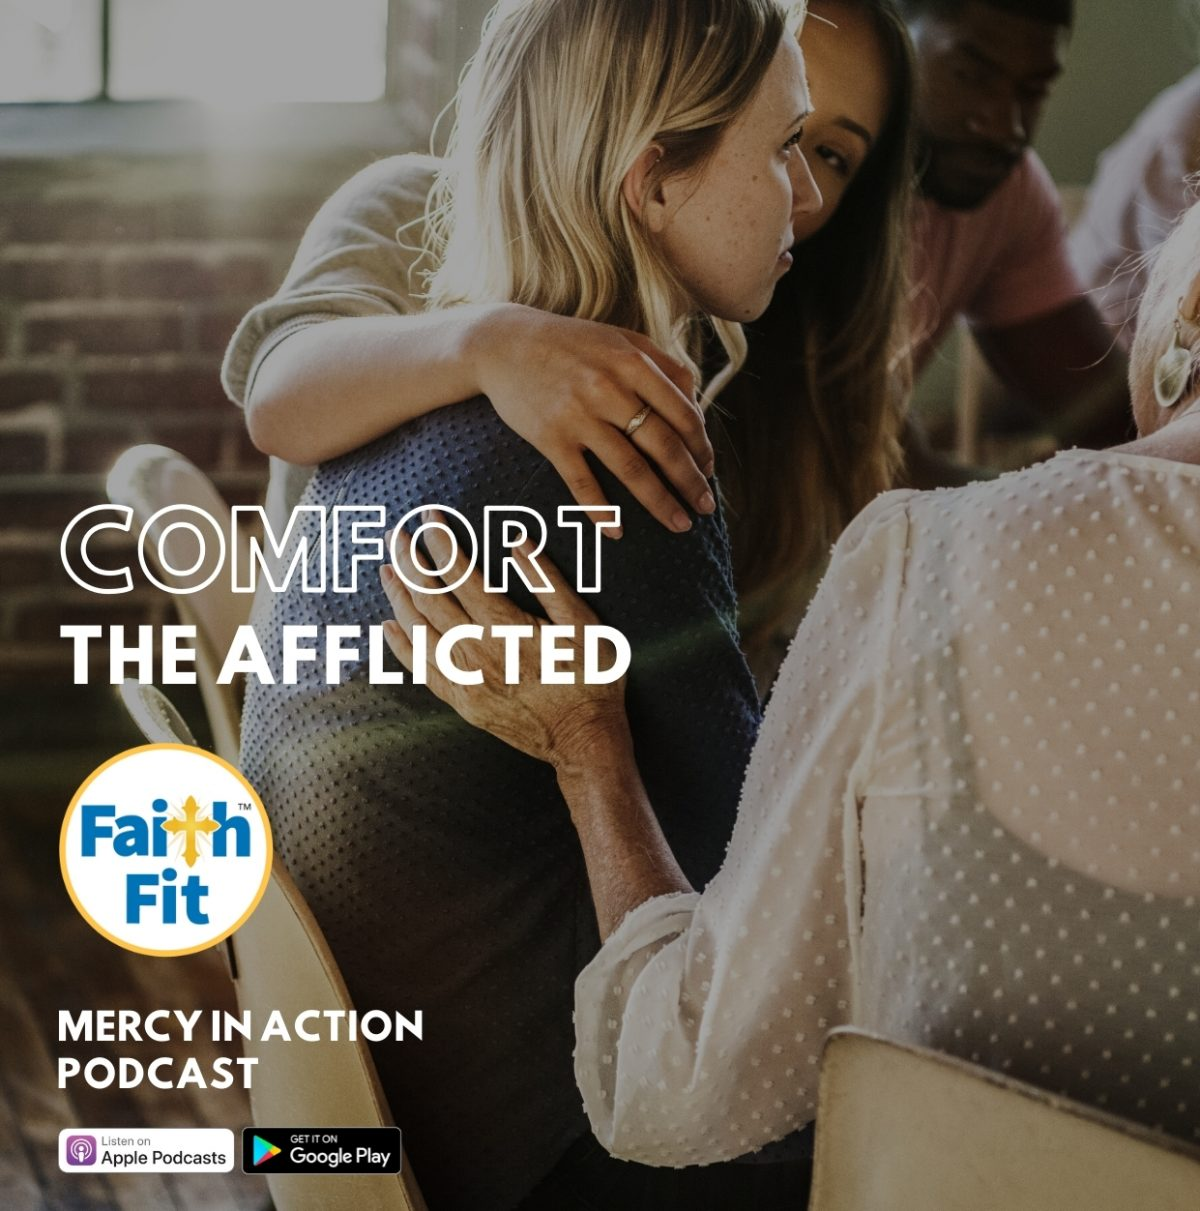 #16: Comfort the Afflicted